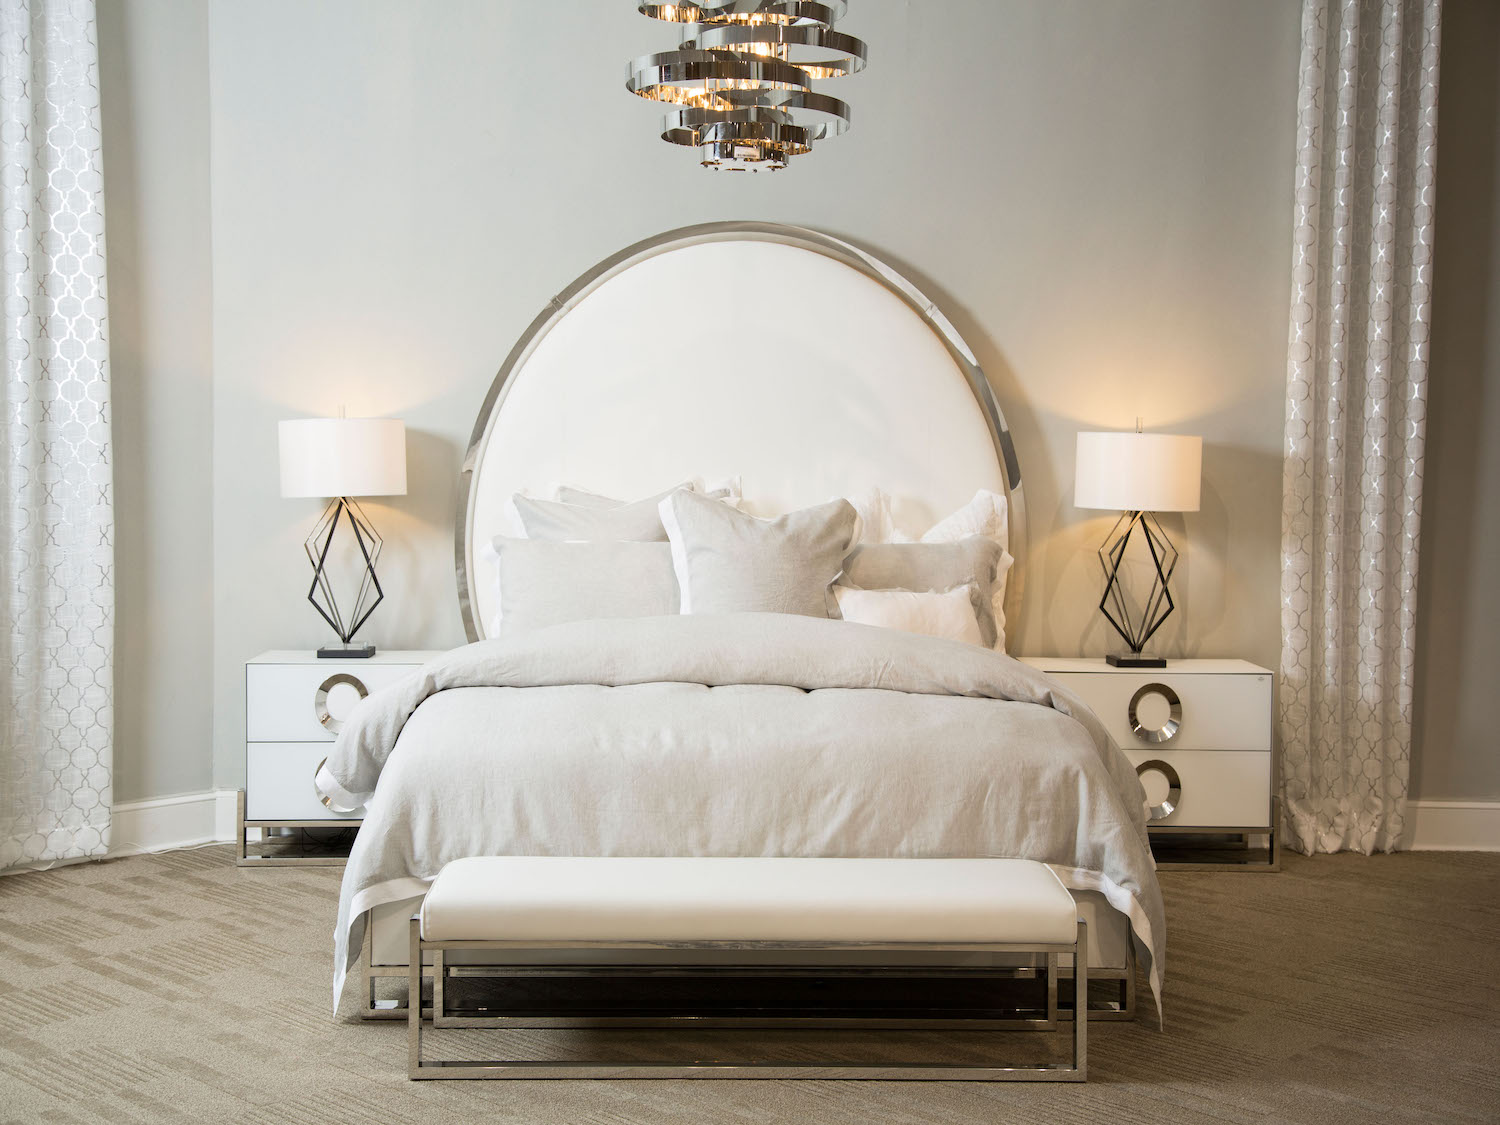 Michael Amini Halo Luxury King Bed In Modern Style, Halo, Premium Bedroom Furniture, Michael Amini Halo Luxury King Bed In Modern Style from Michael Amini